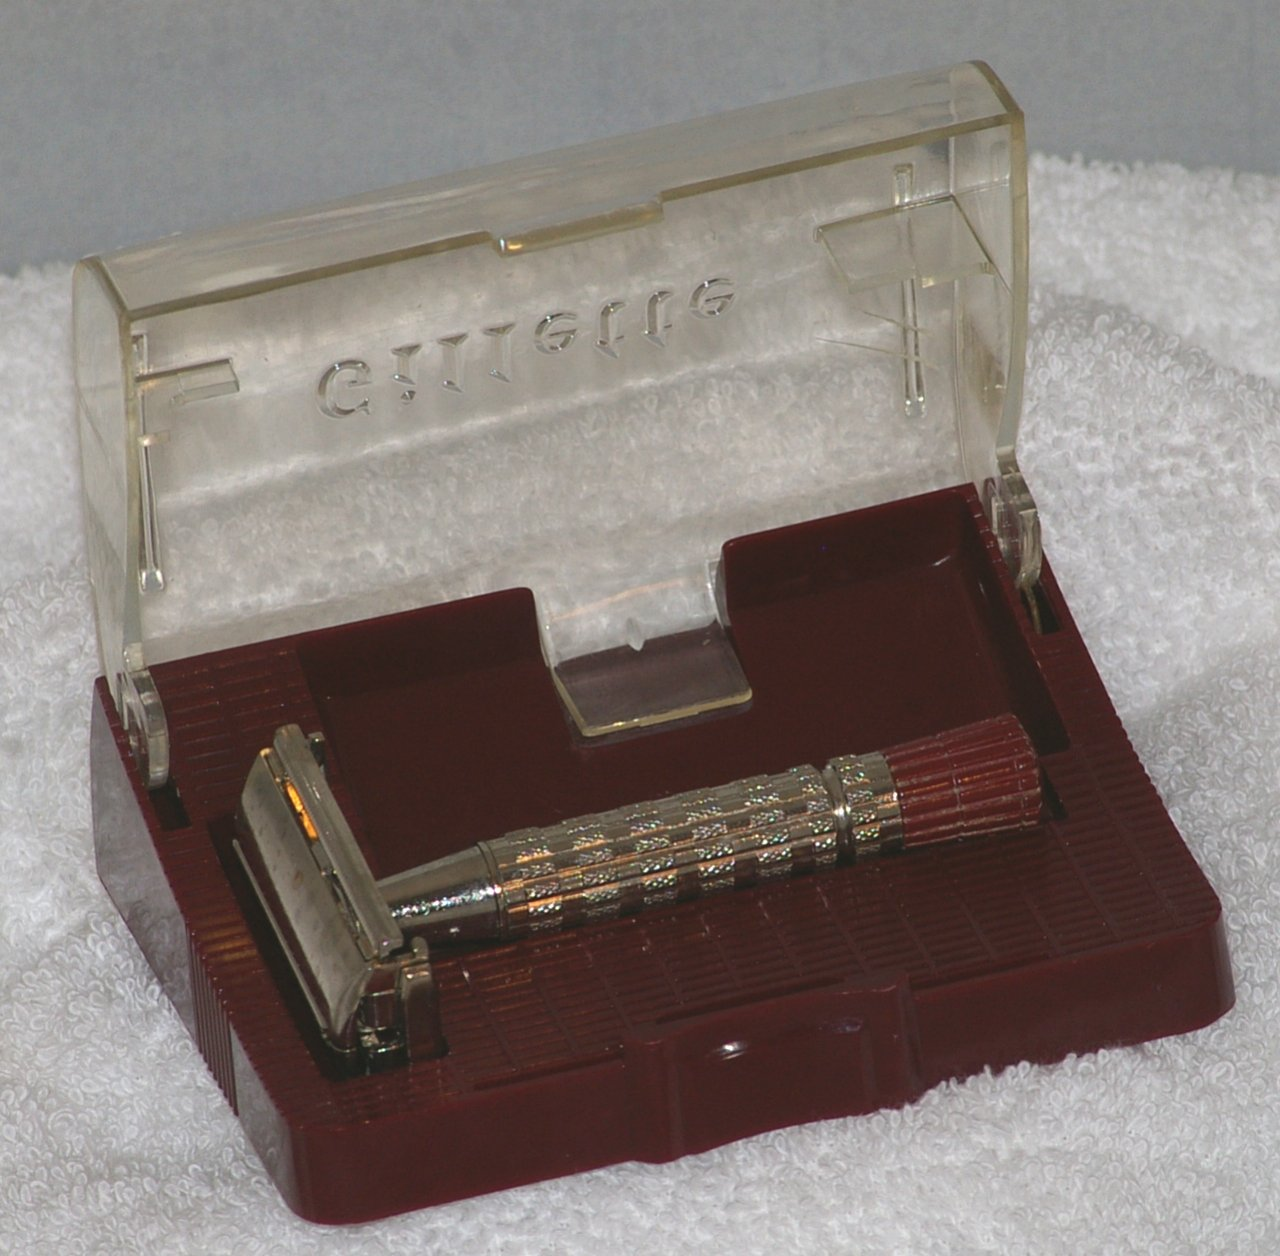 Gillette Red Tip Super Speed Safety Razor in Case from 1956